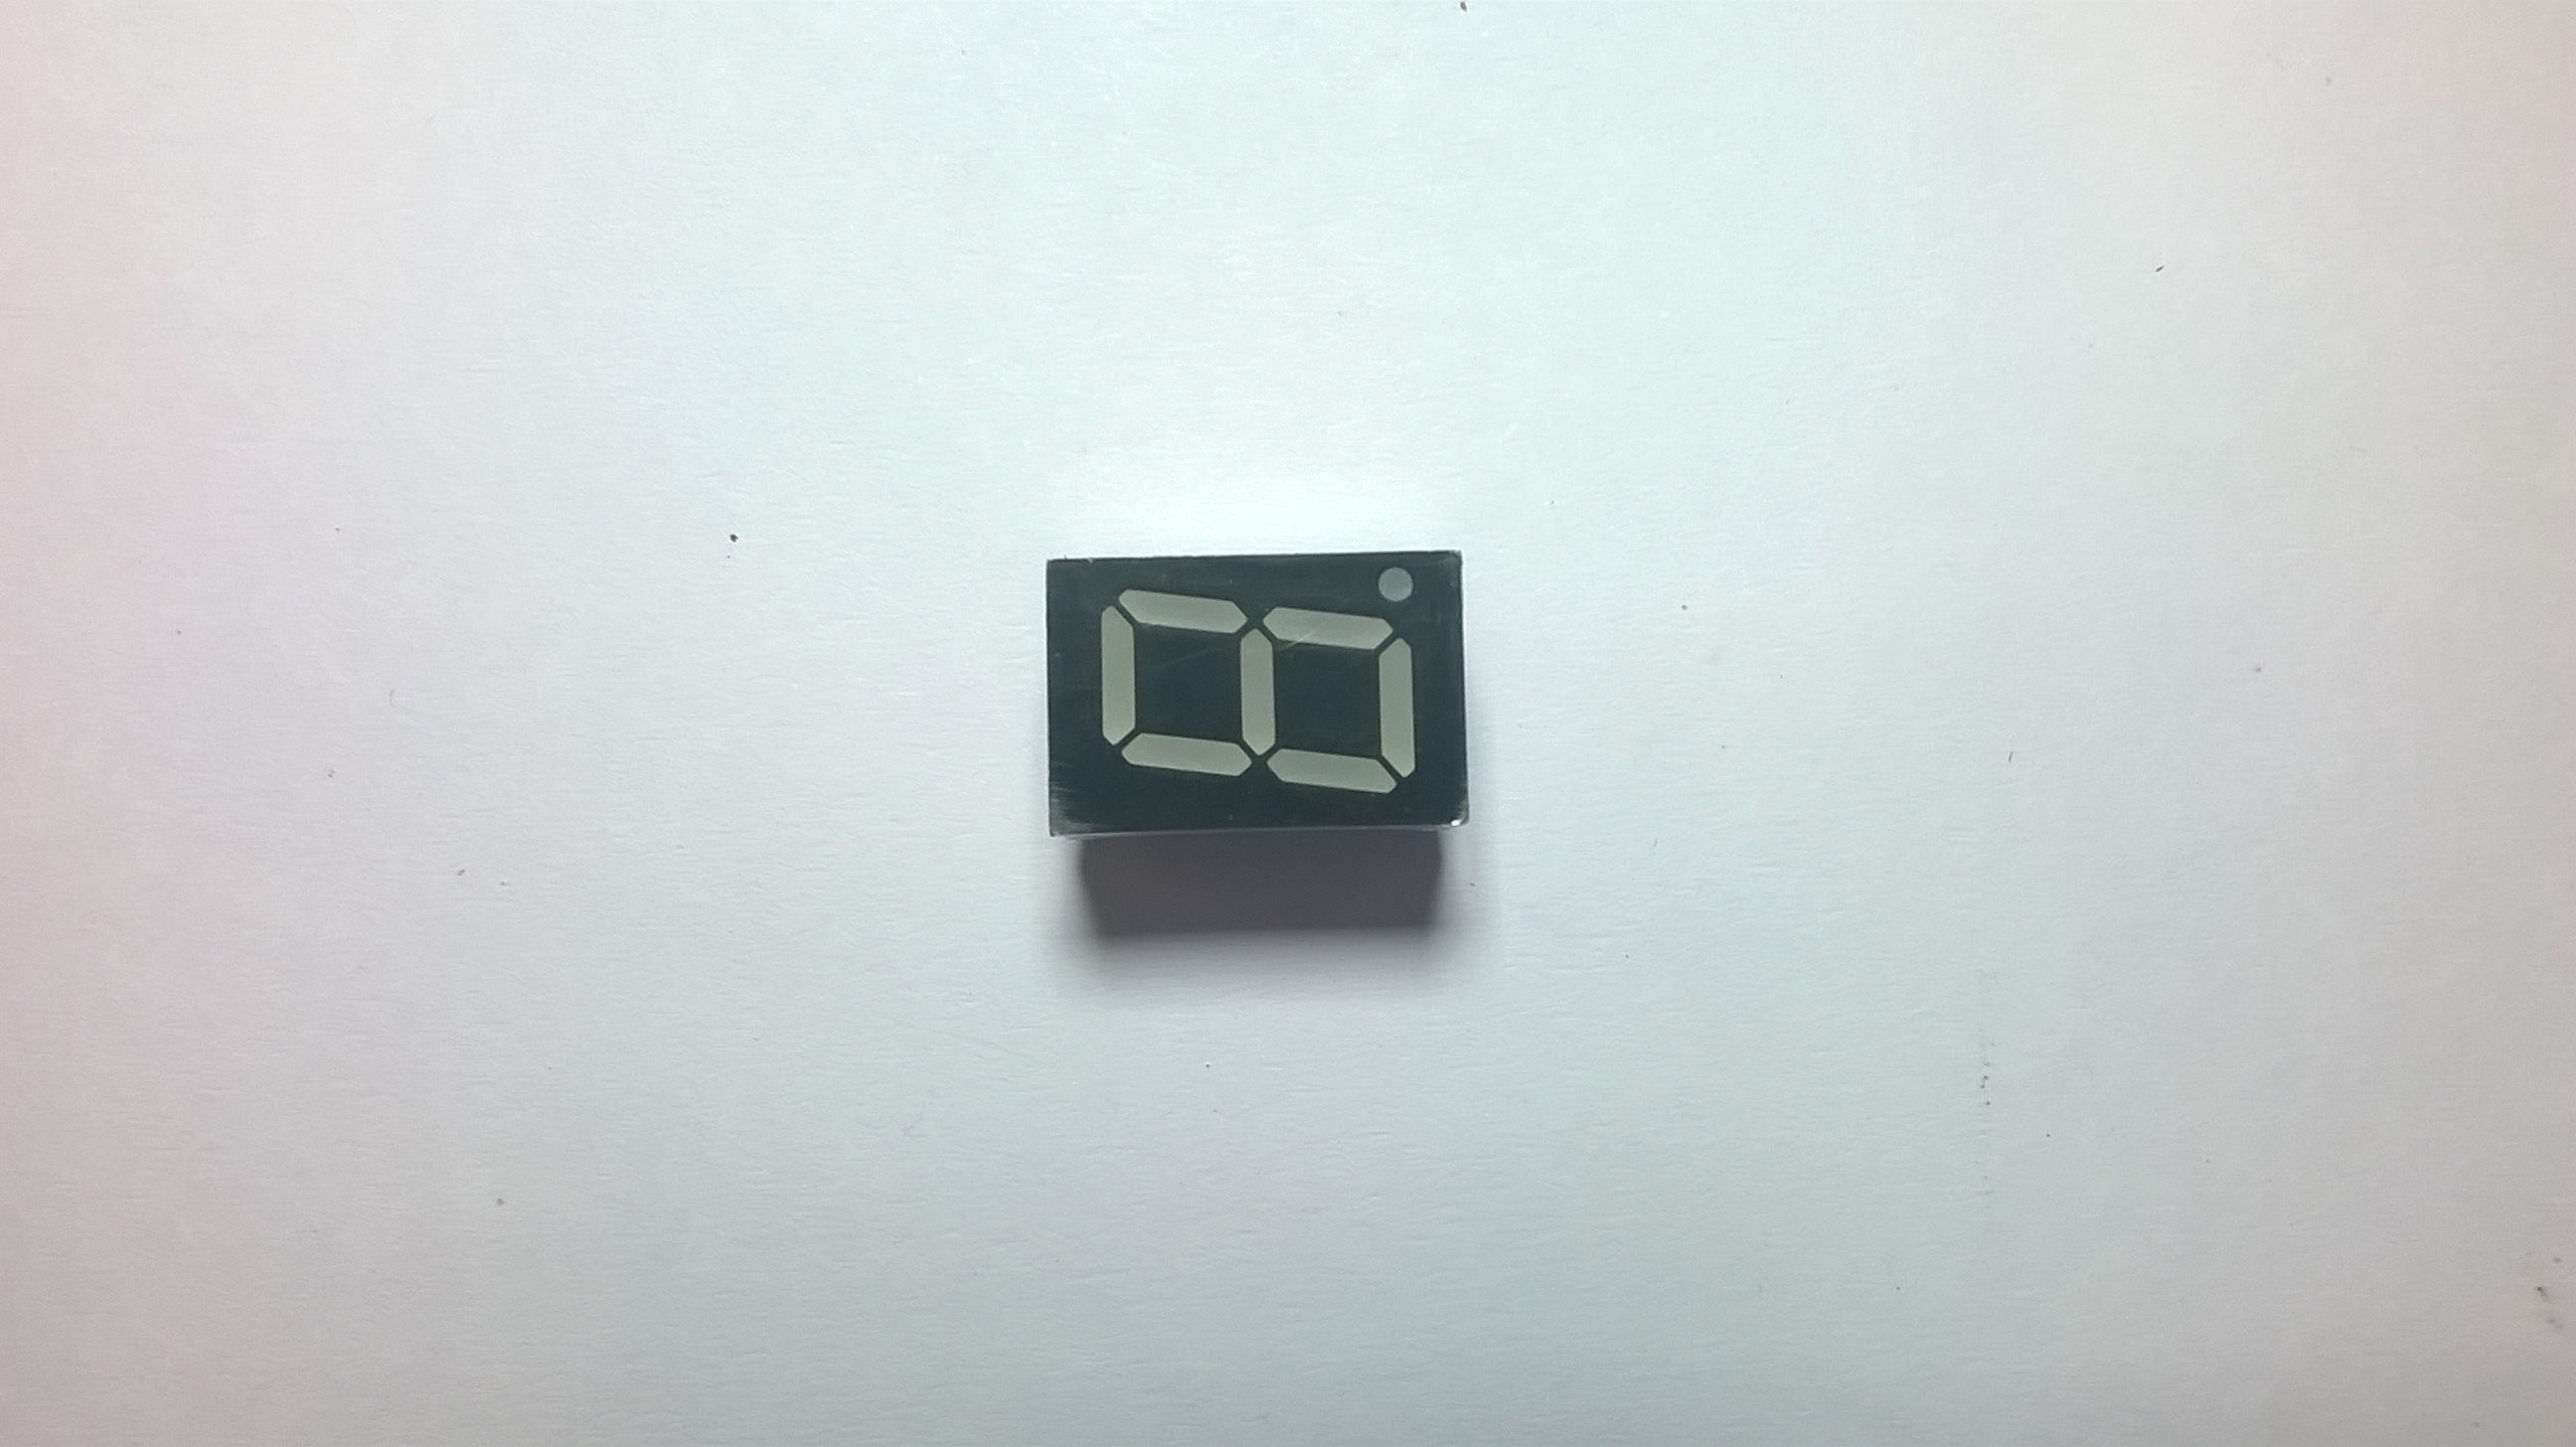 Picture of 1 to 10 Counting Machine With Arduino Uno